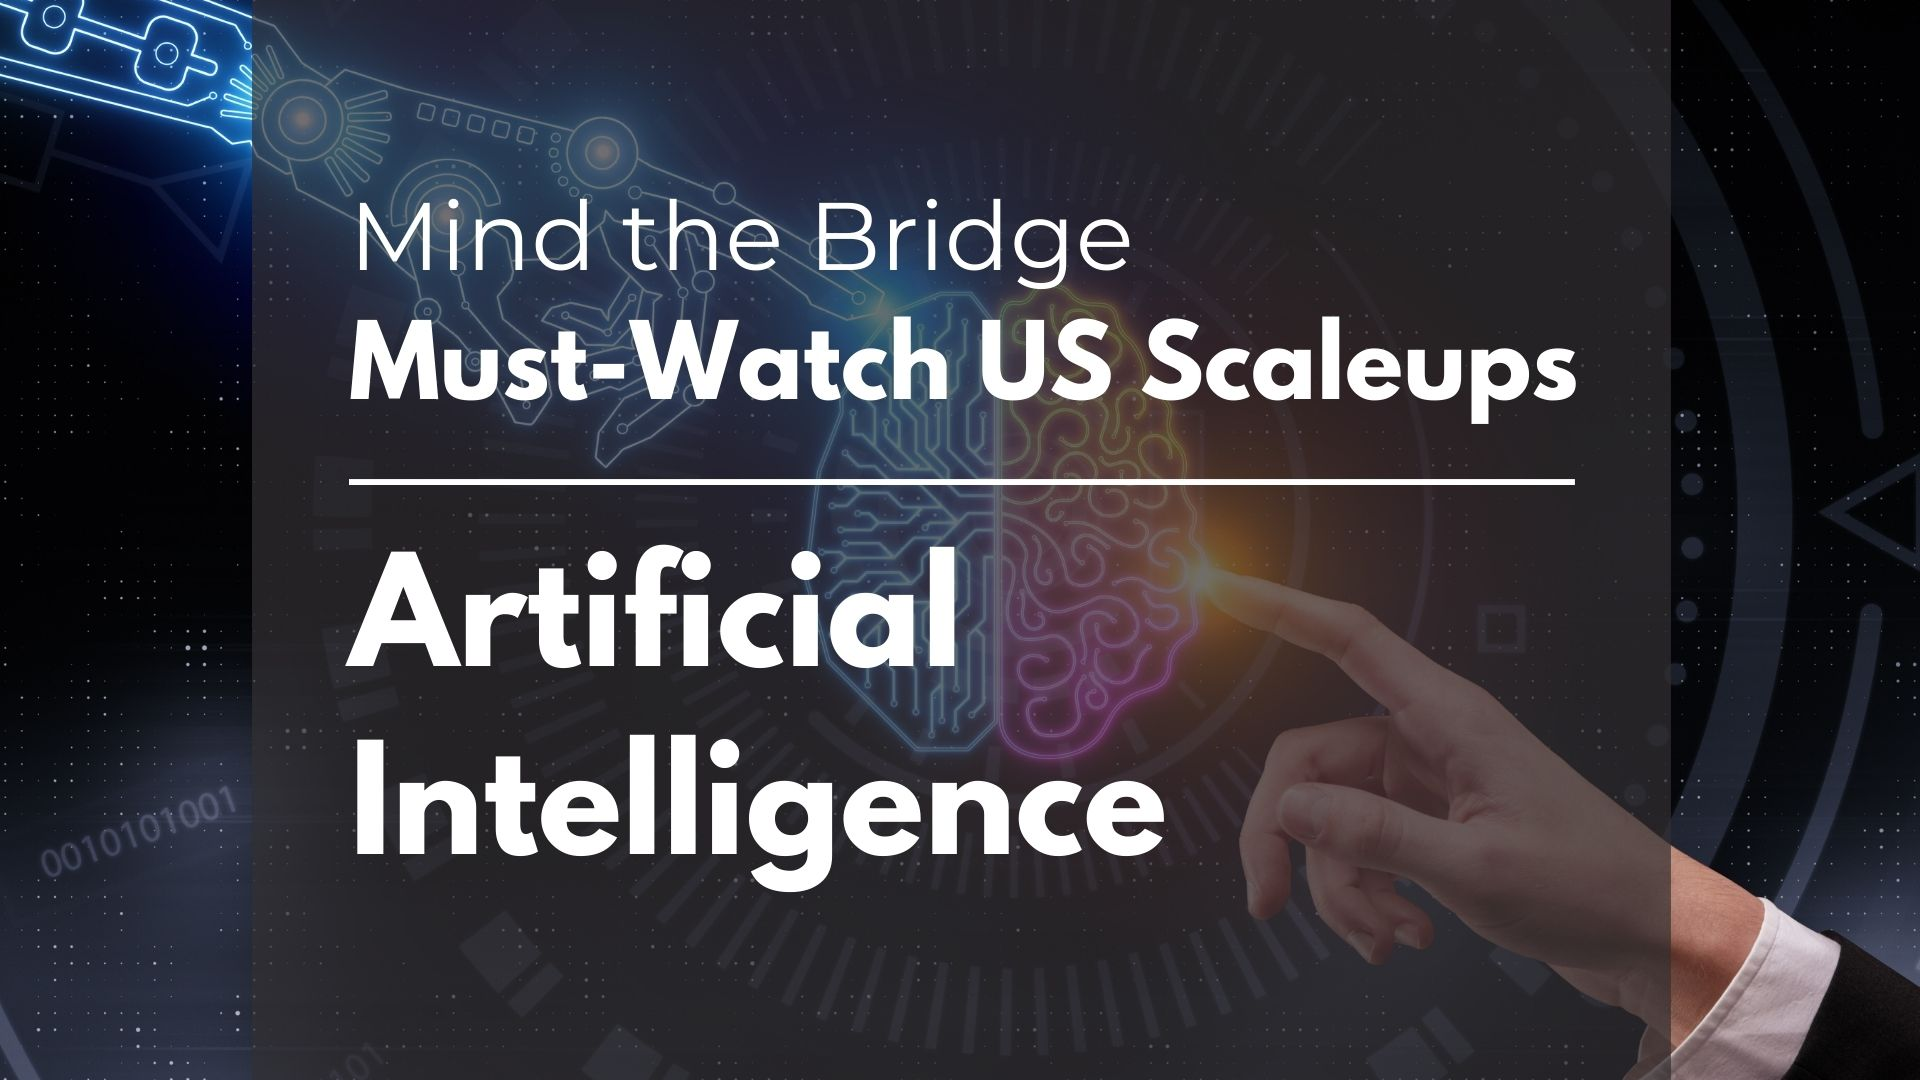 MTB Must-Watch US Scaleup-Artificial Intelligence